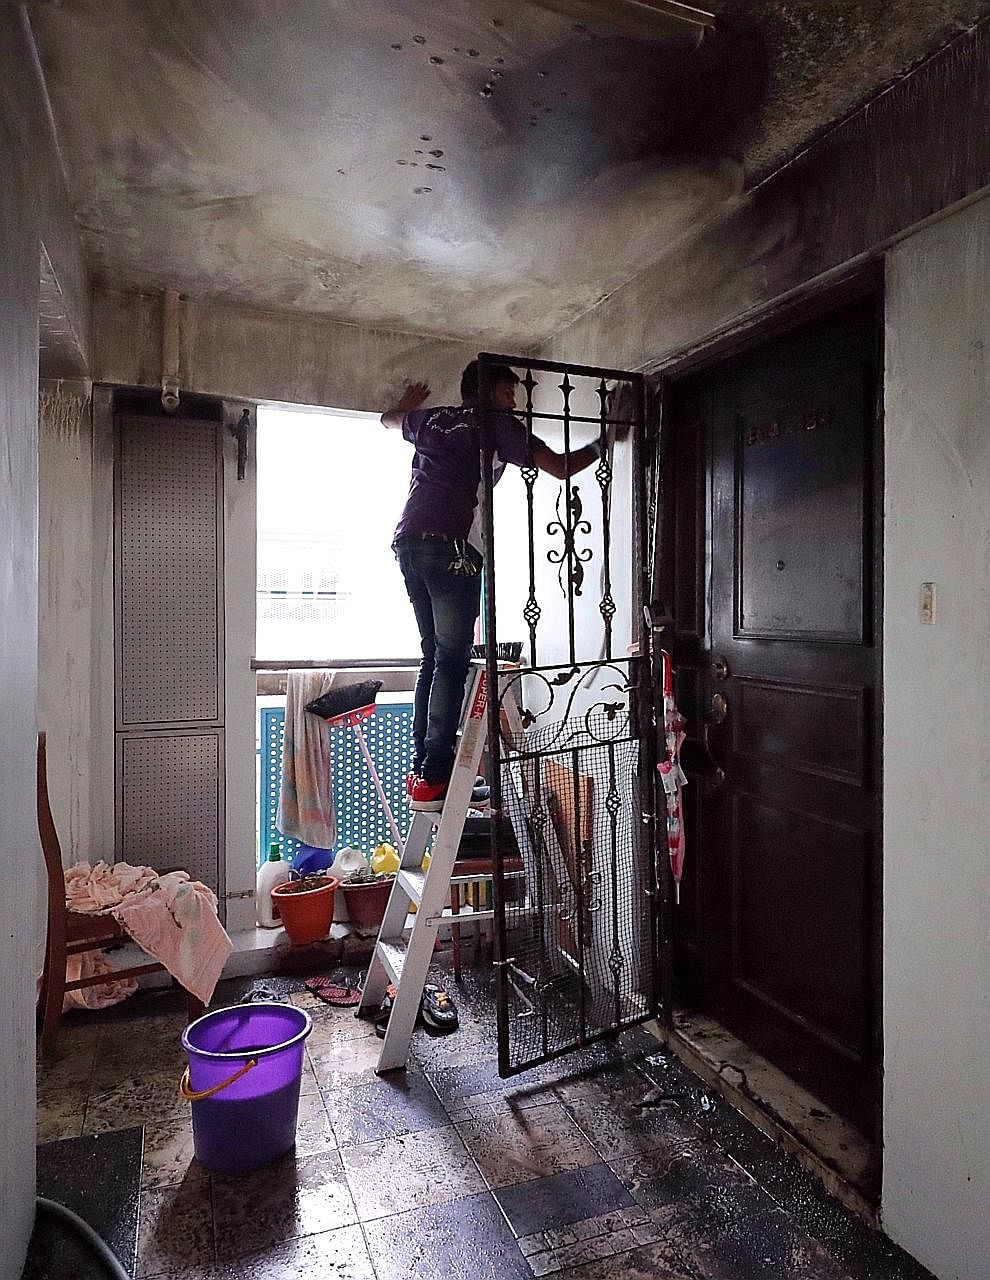 Madam Maimon Sharif, who died in the blaze, was believed to be making lunch for her gr